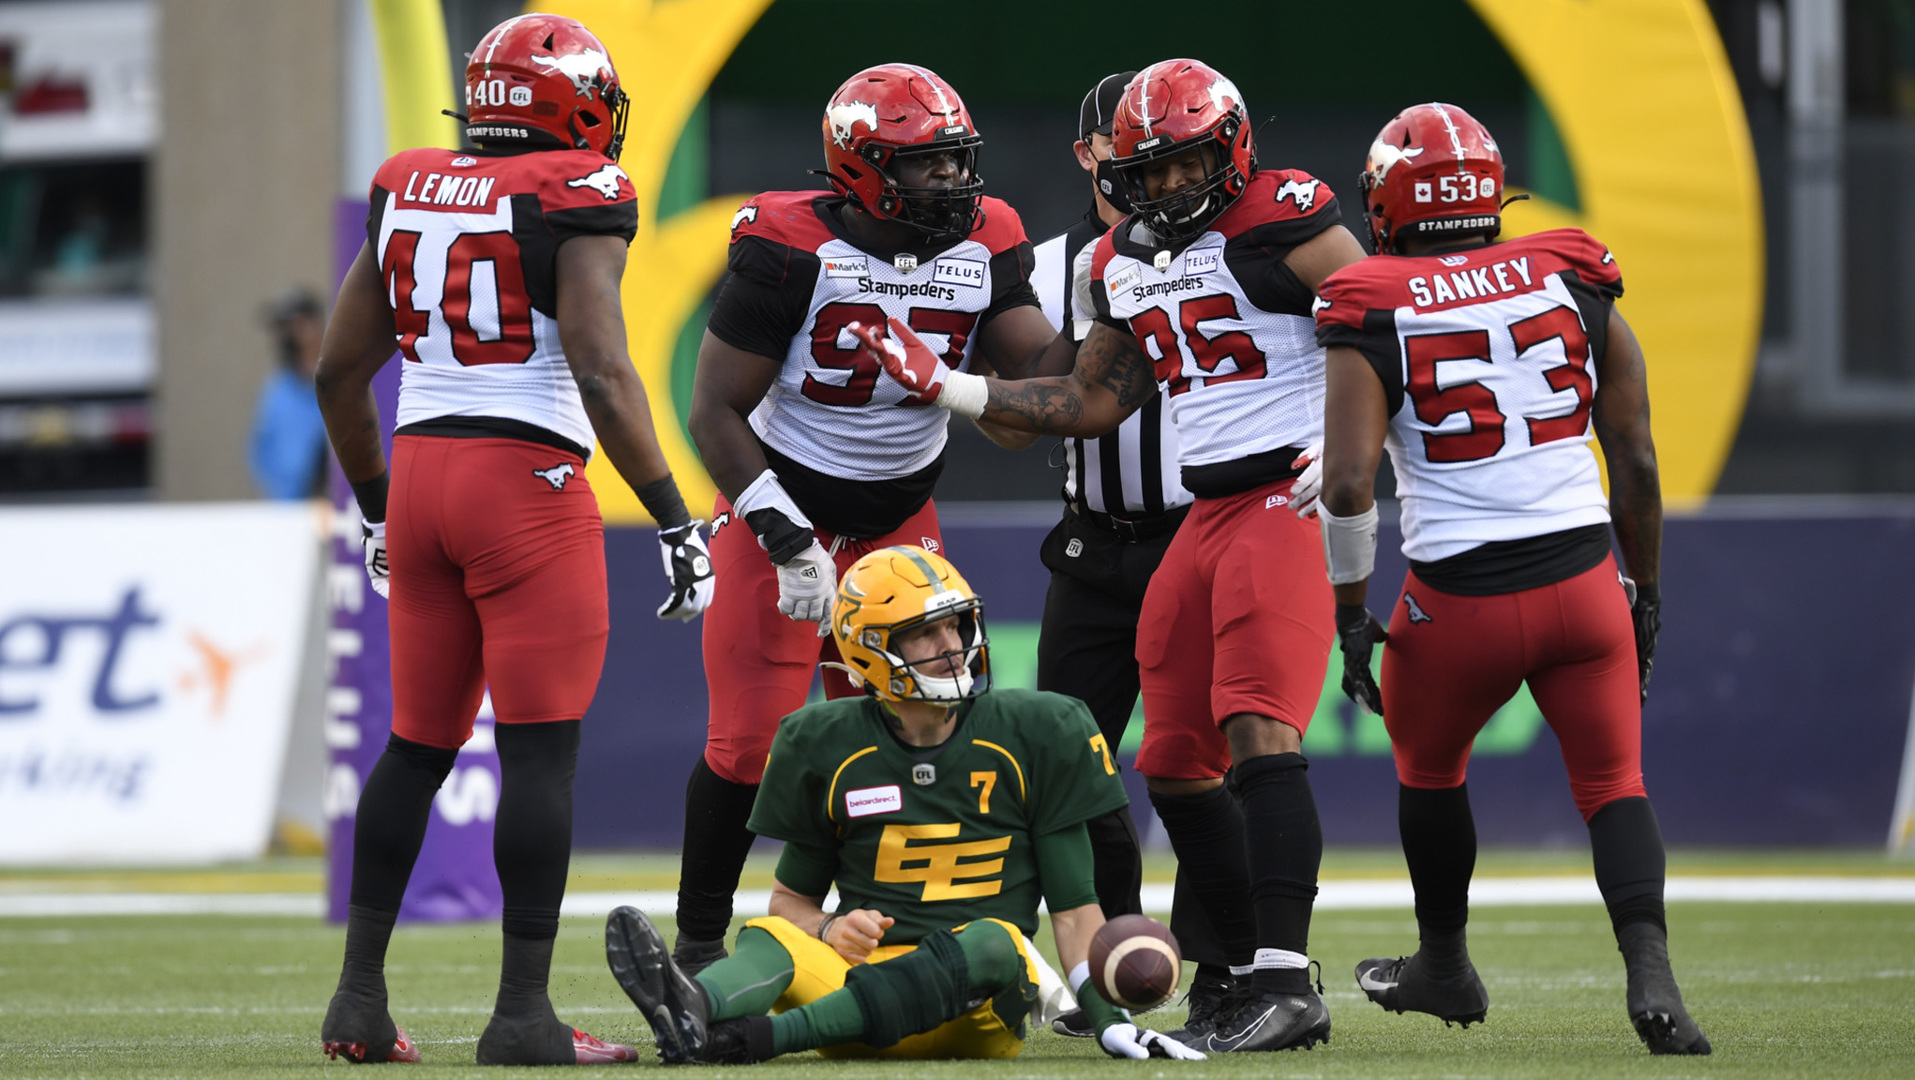 Stamps D Sacks Harris 7 Times In Victory